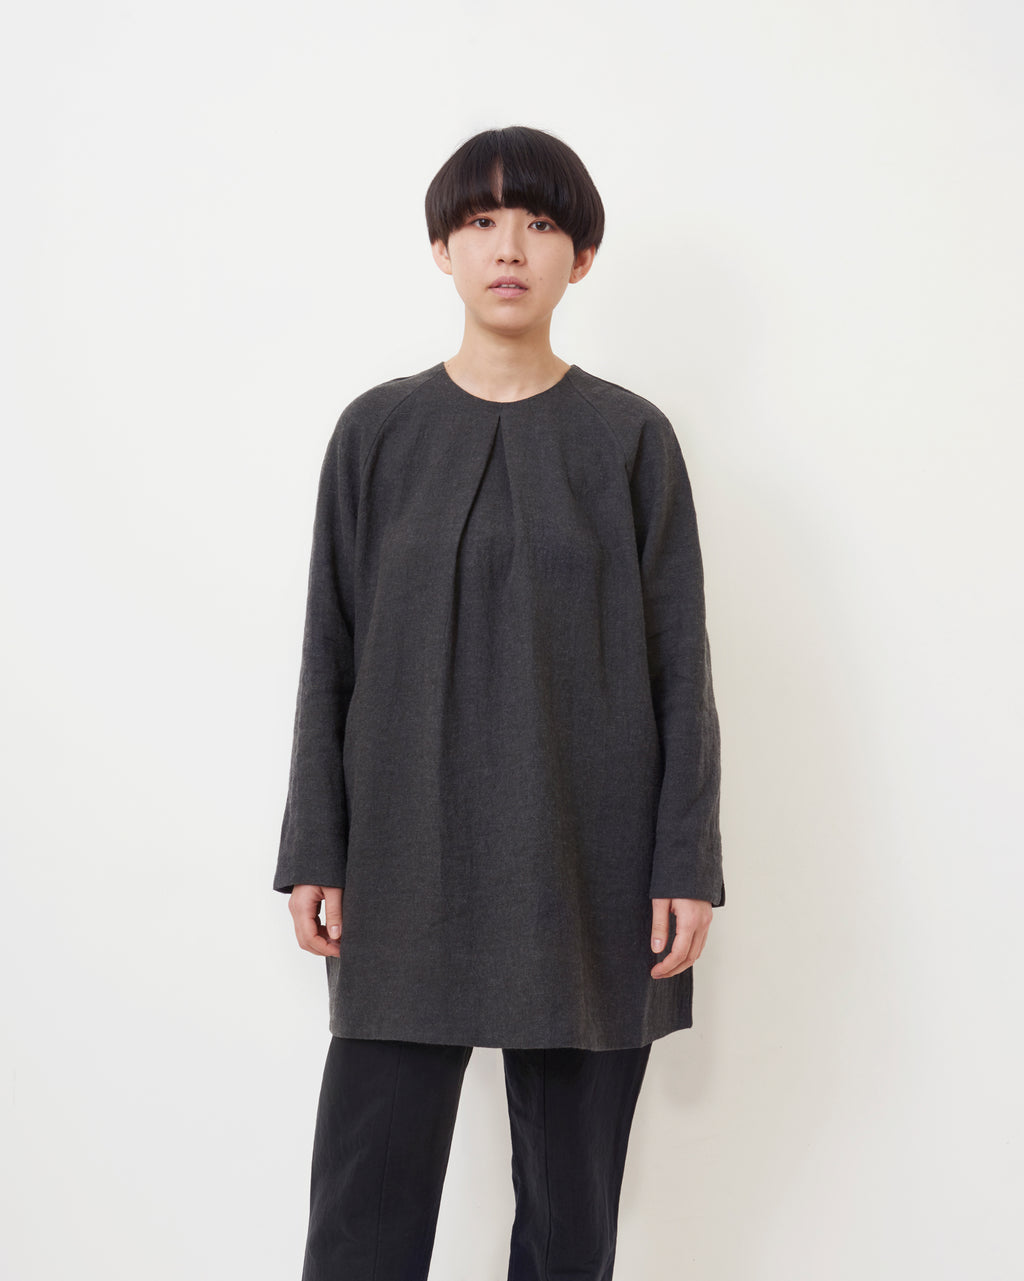 Wool and Linen Smock Top